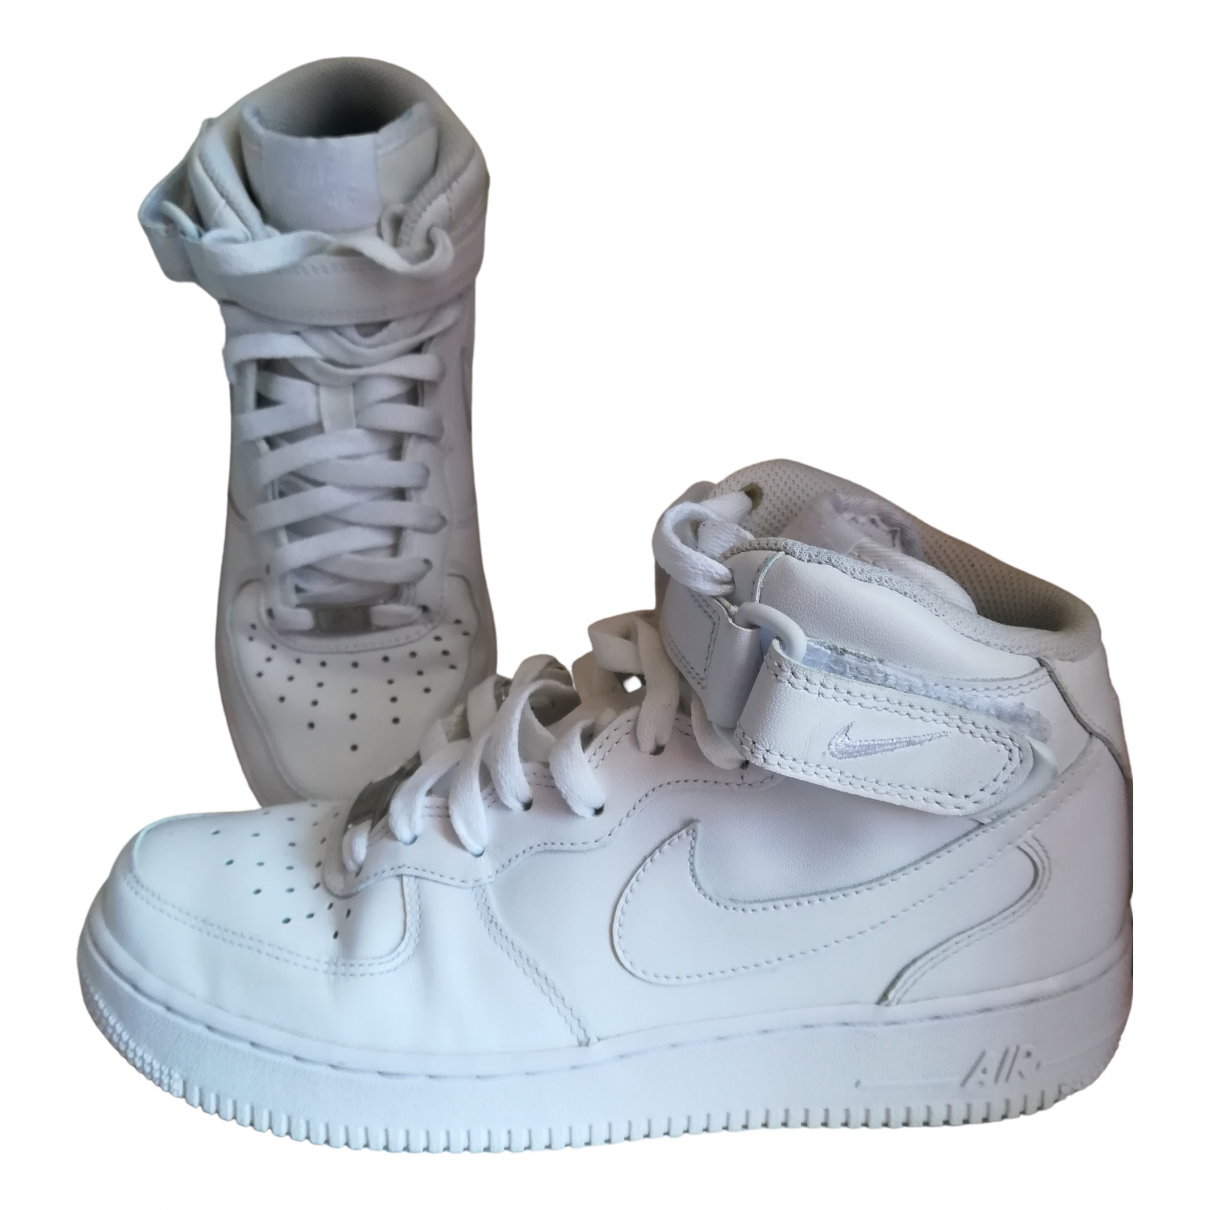 Nike Air Force 1 Sneakers in  Weiss Kautschuk